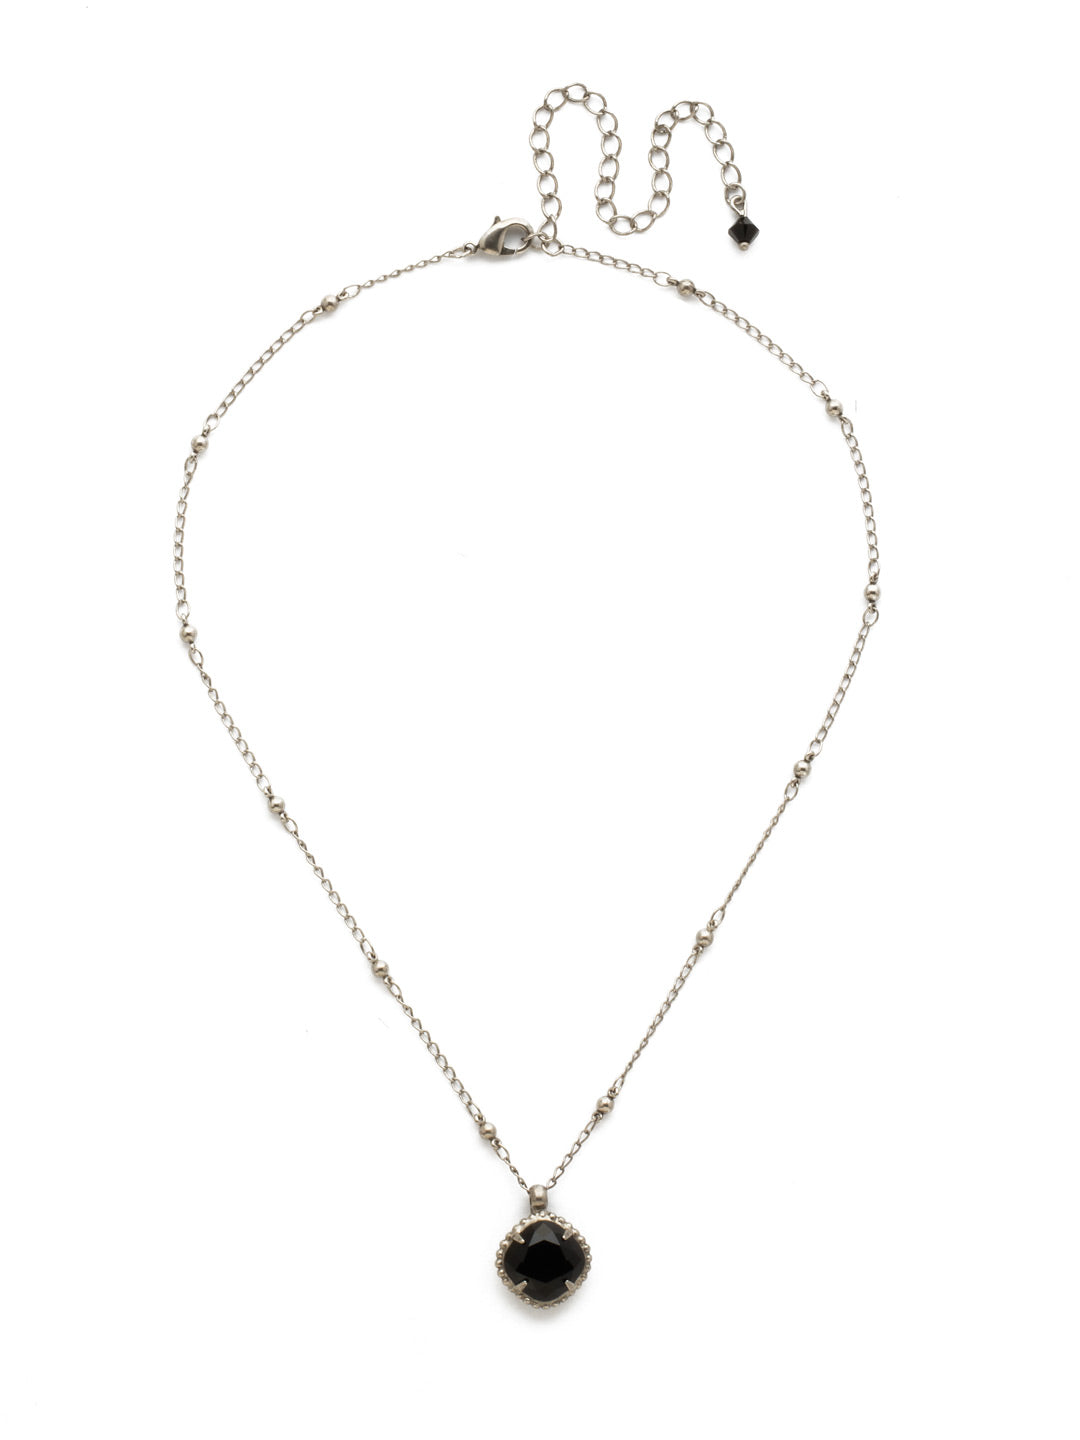 Cushion-Cut Pendant Necklace - NDS50ASJET